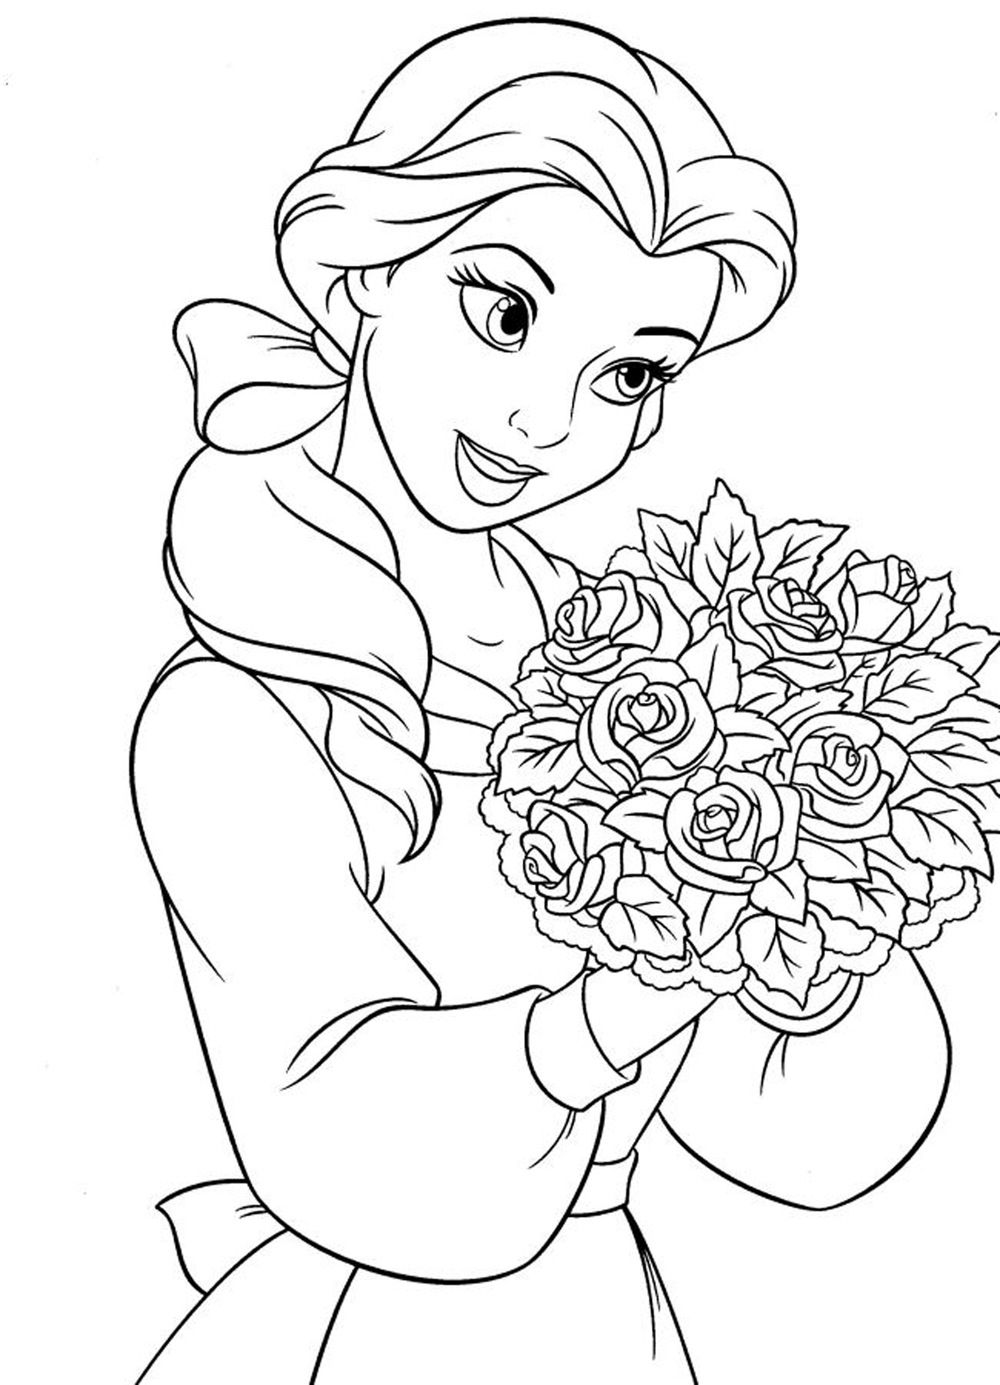 princess coloring pages for girls free large images coloring - Colouring Pictures For Girls